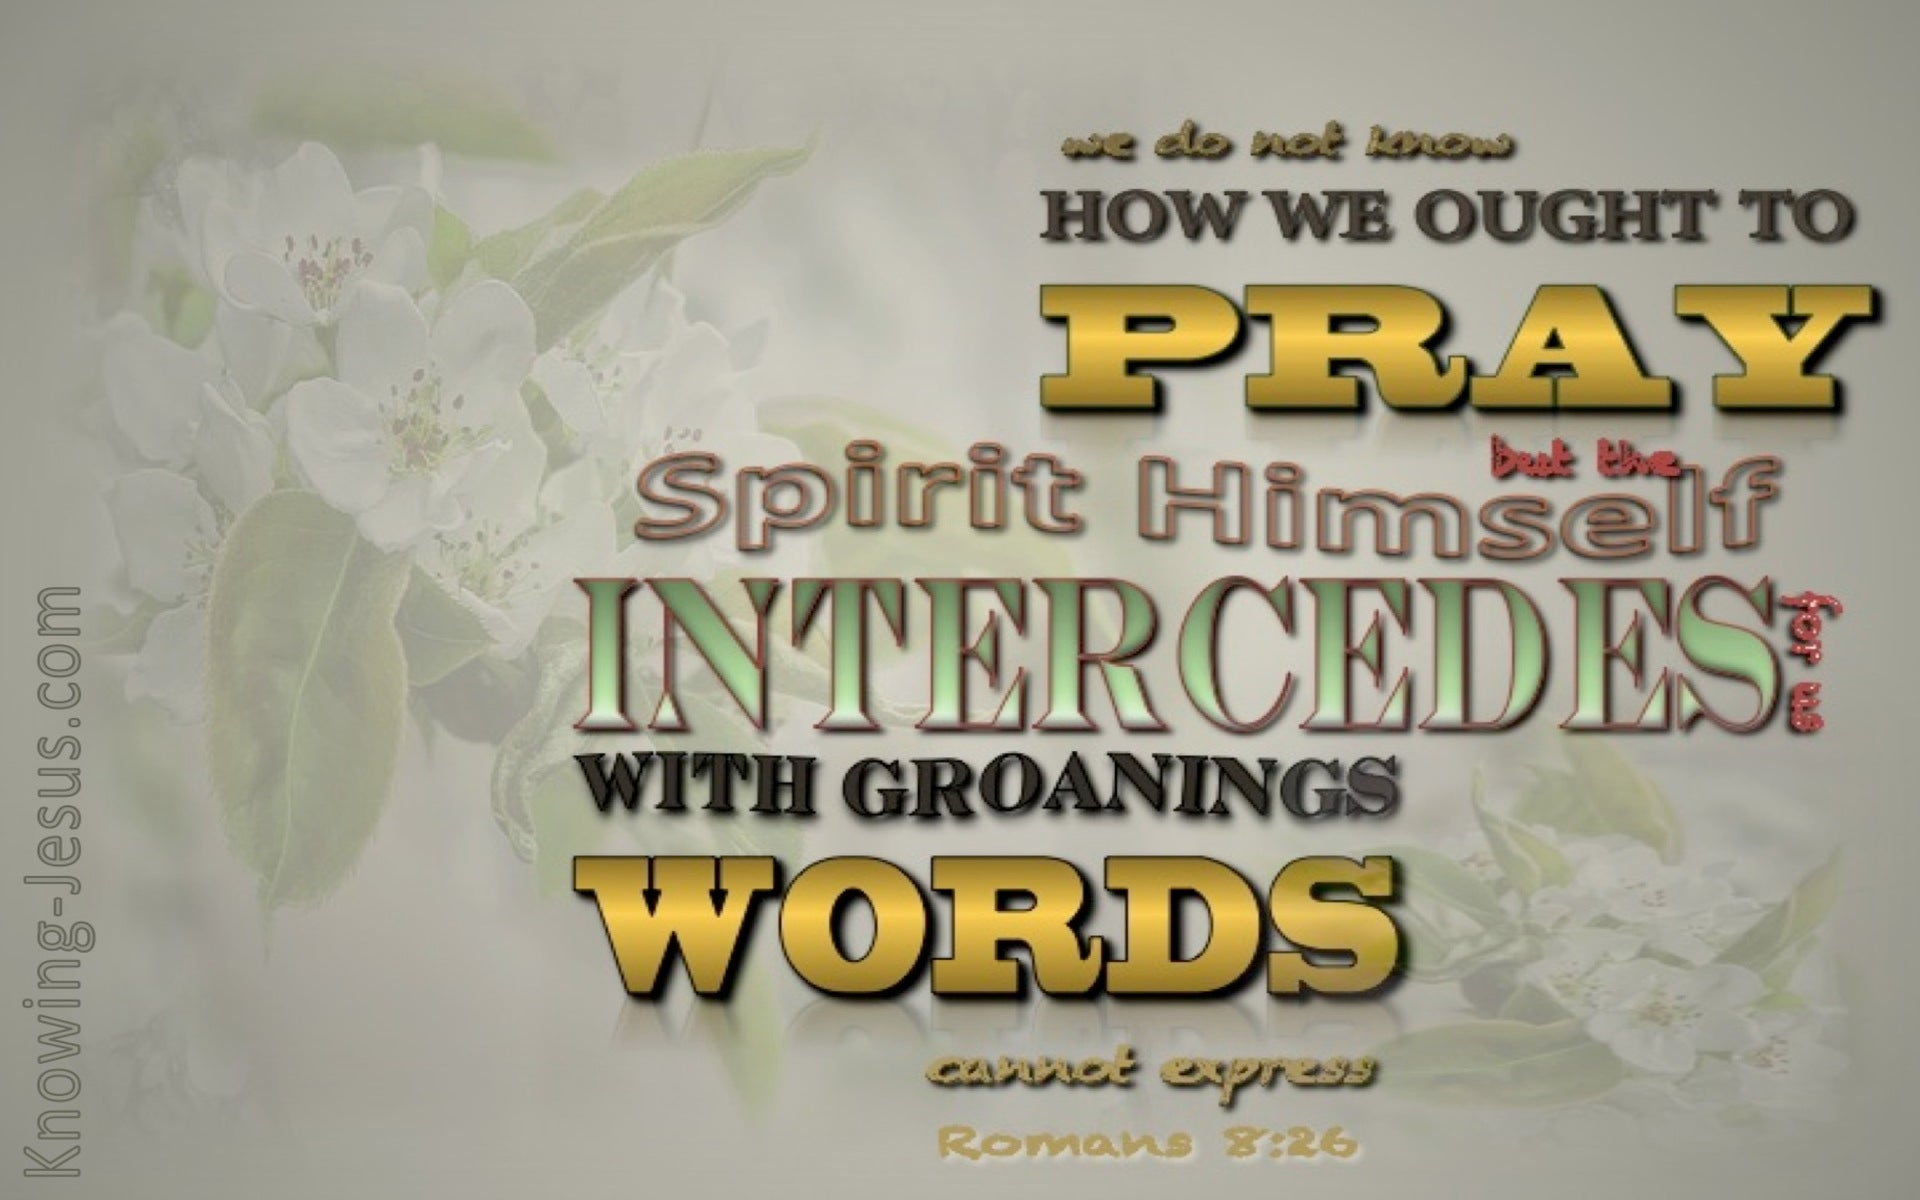 Romans 8:26 The Spirit Intercedes (gold)